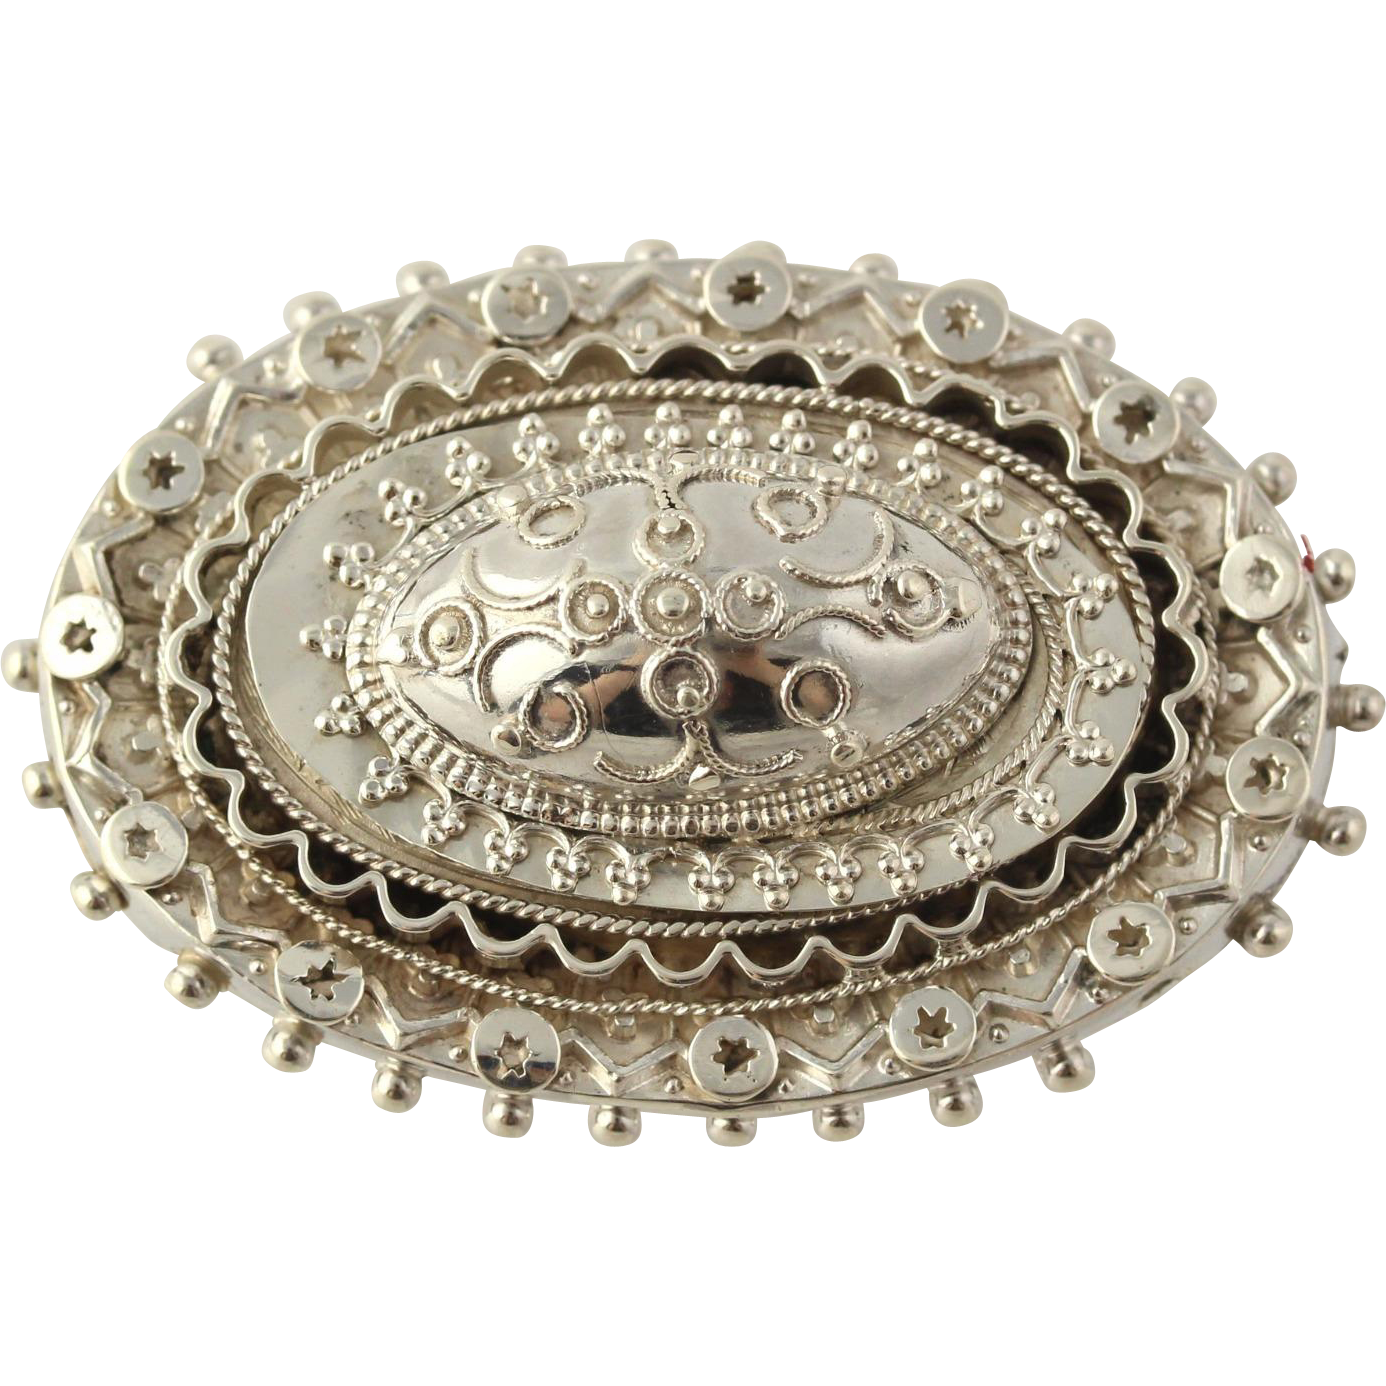 Victorian Era Oval Brooch - Sterling Silver Circa 1885 Chester, England Ornate